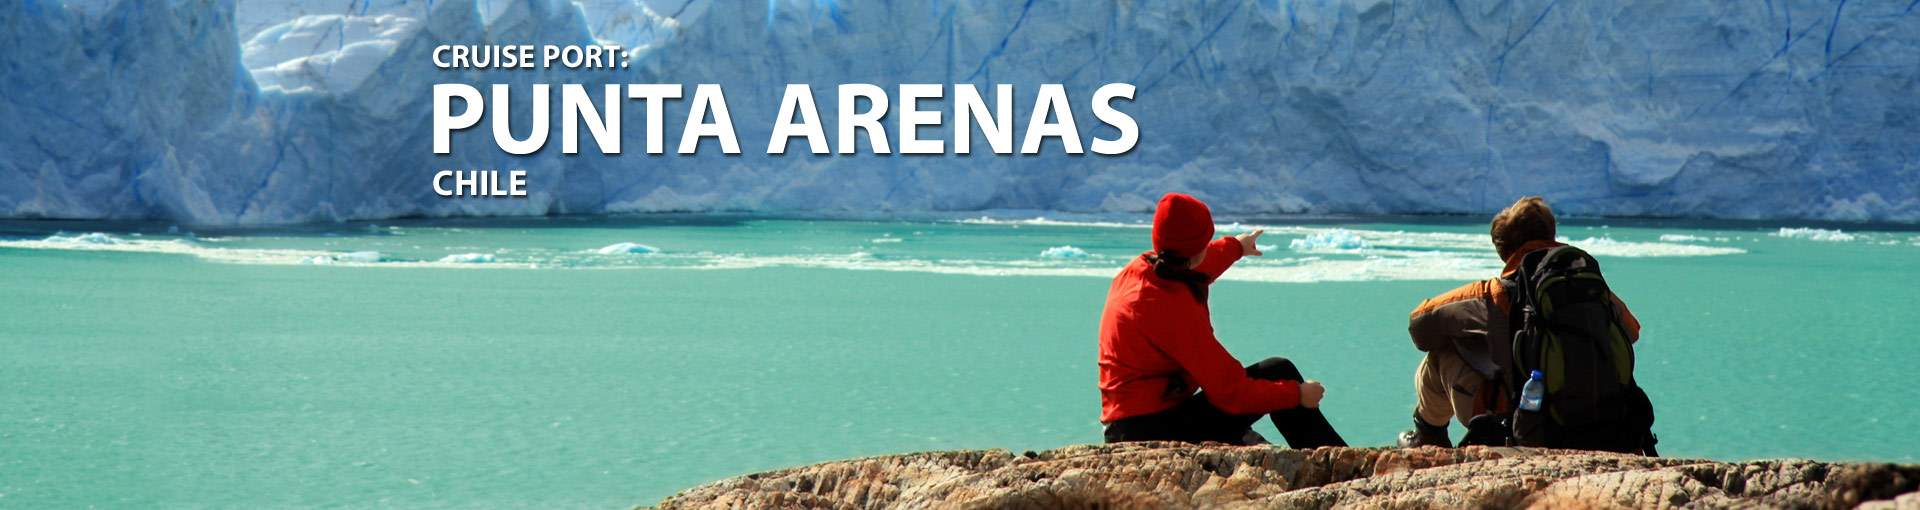 Cruises from Punta Arenas, Chile